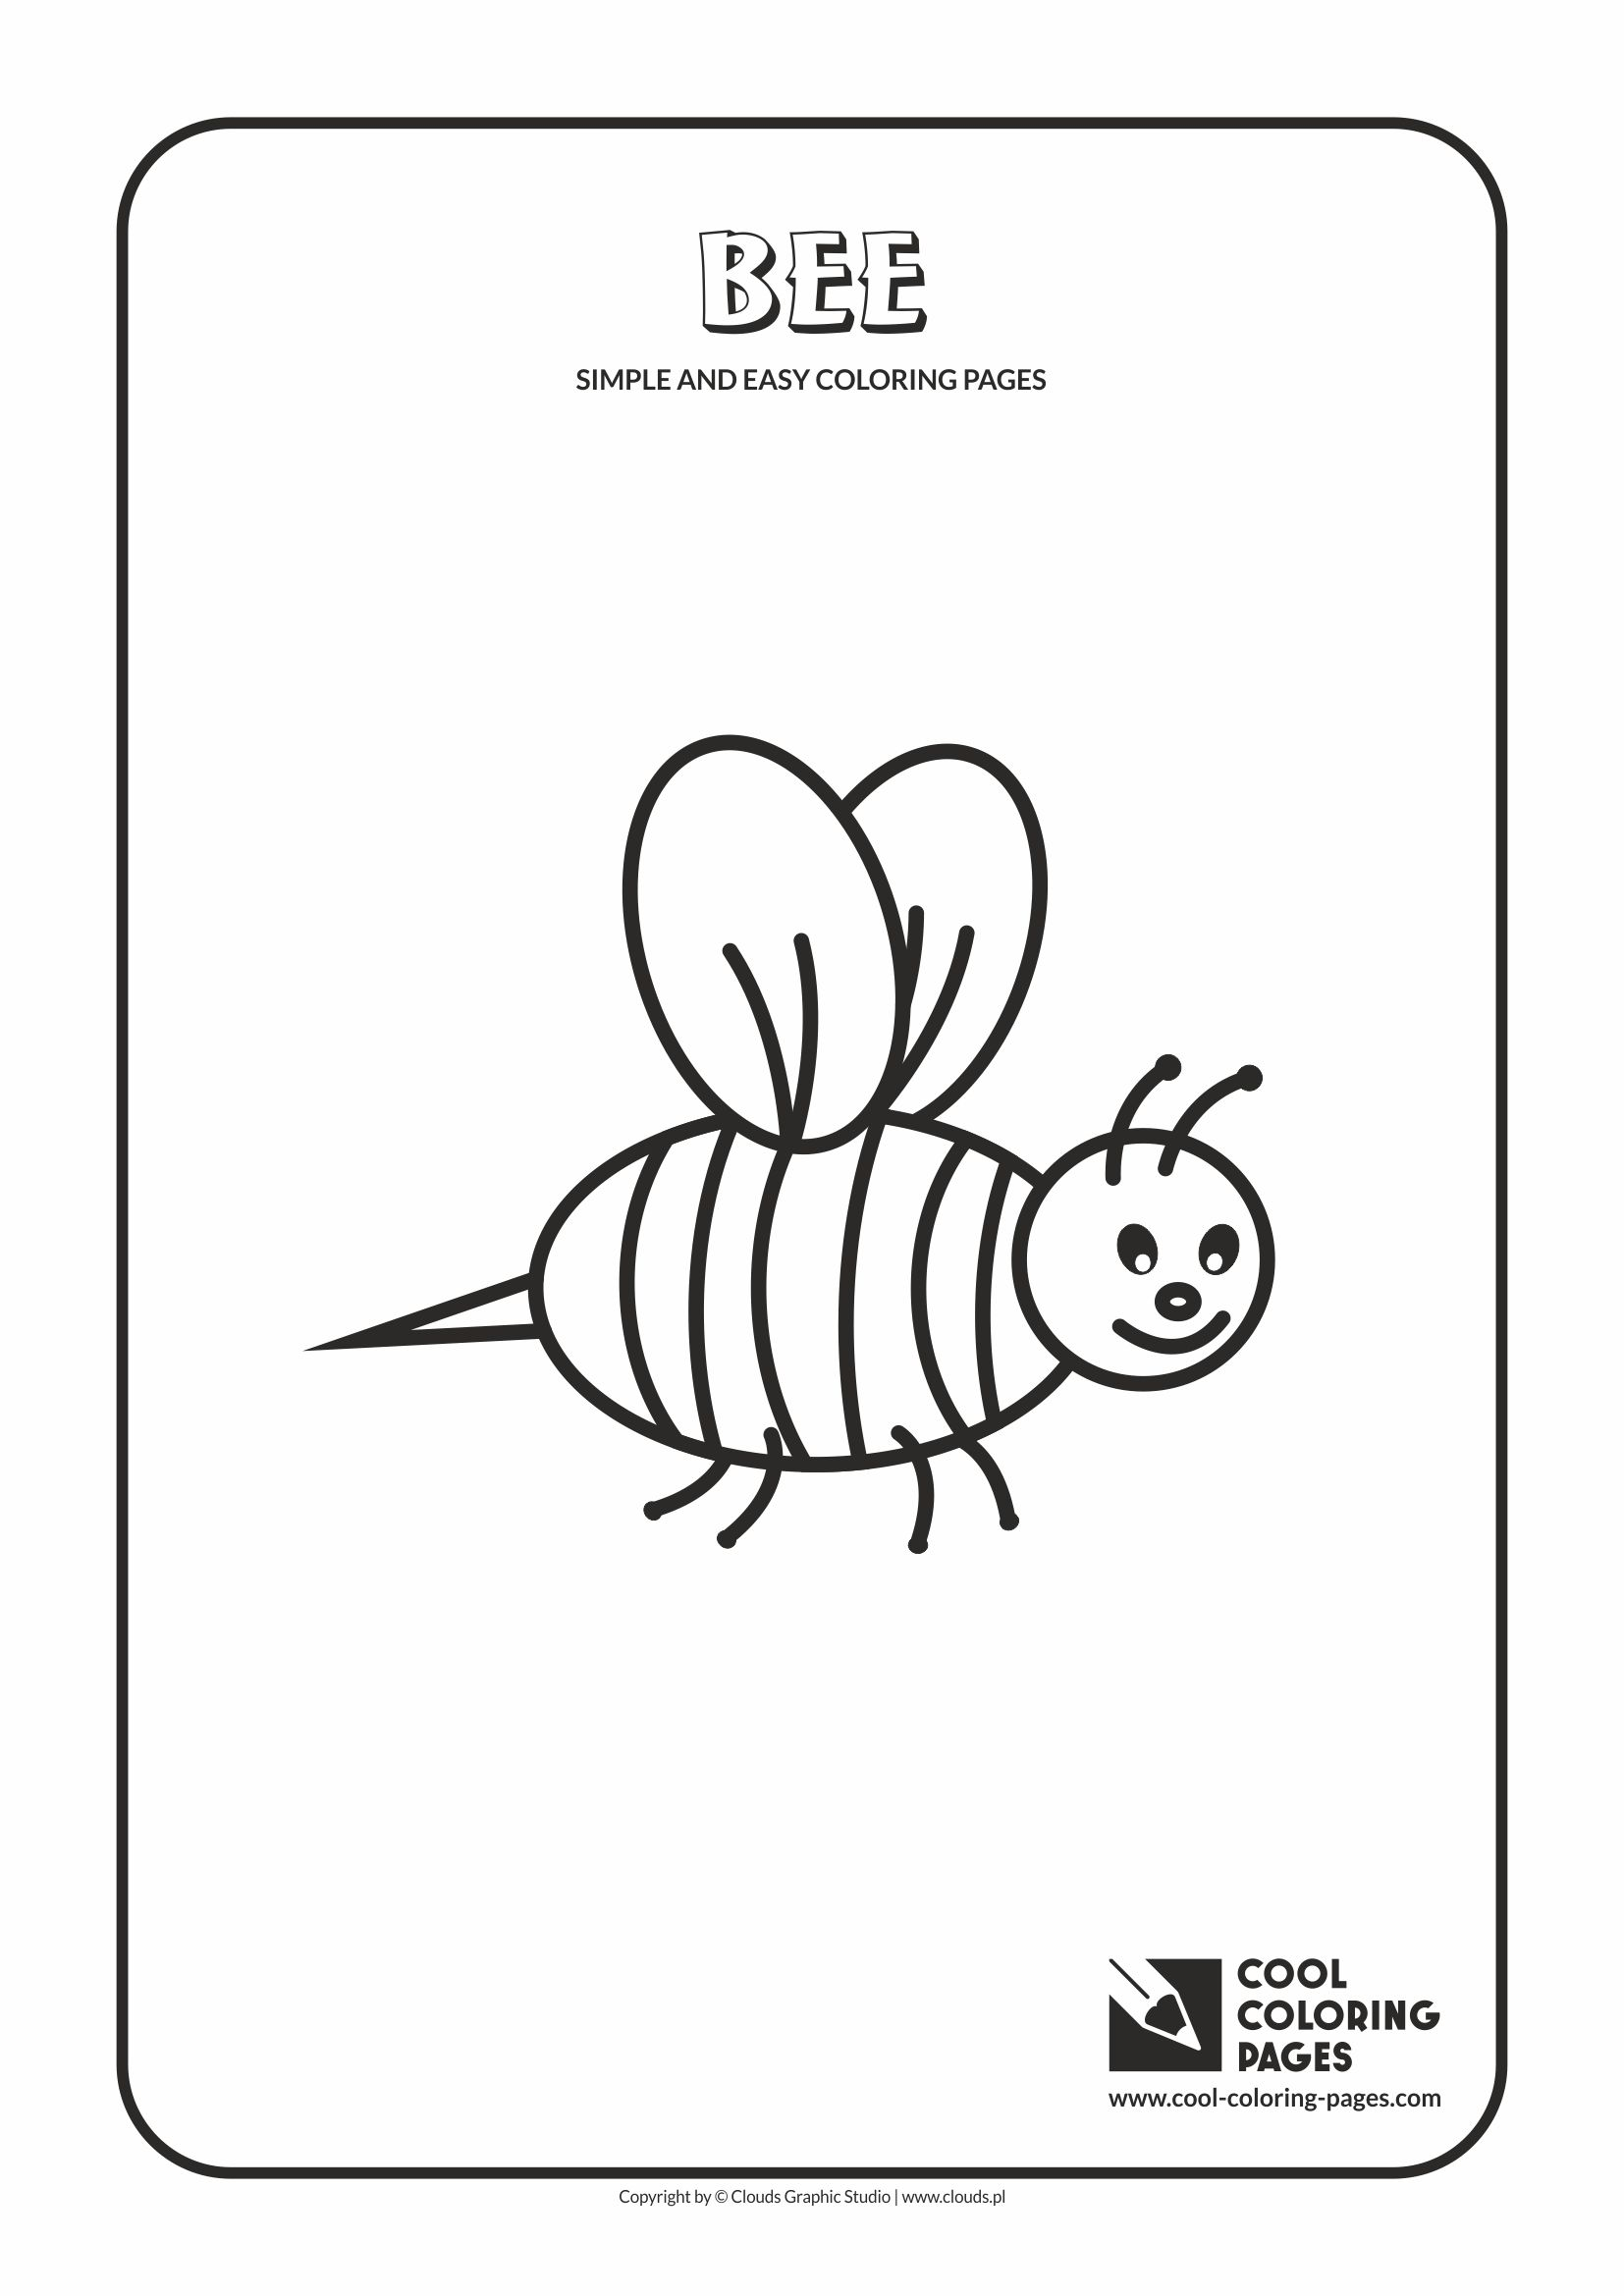 Simple and easy coloring pages for toddlers - Bee